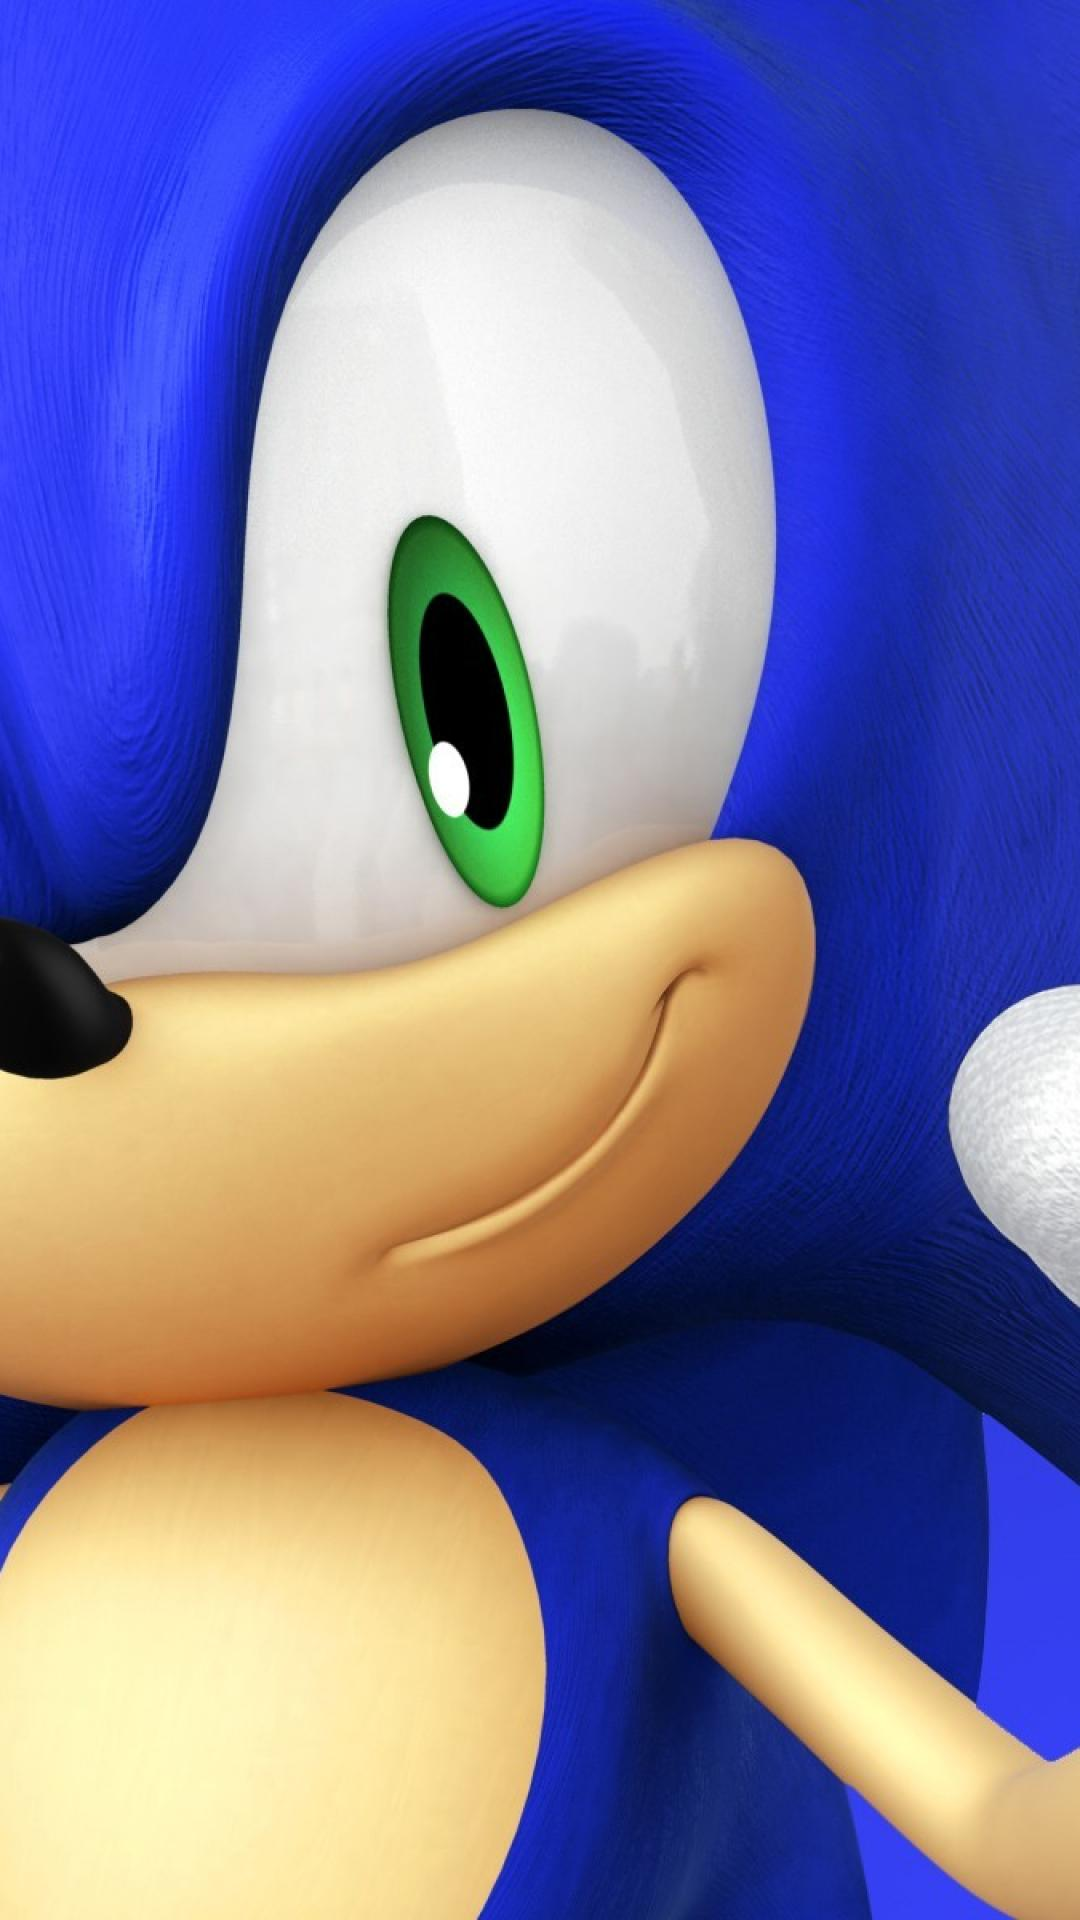 Download Sonic The Hedgehog Iphone Wallpaper, HD Backgrounds